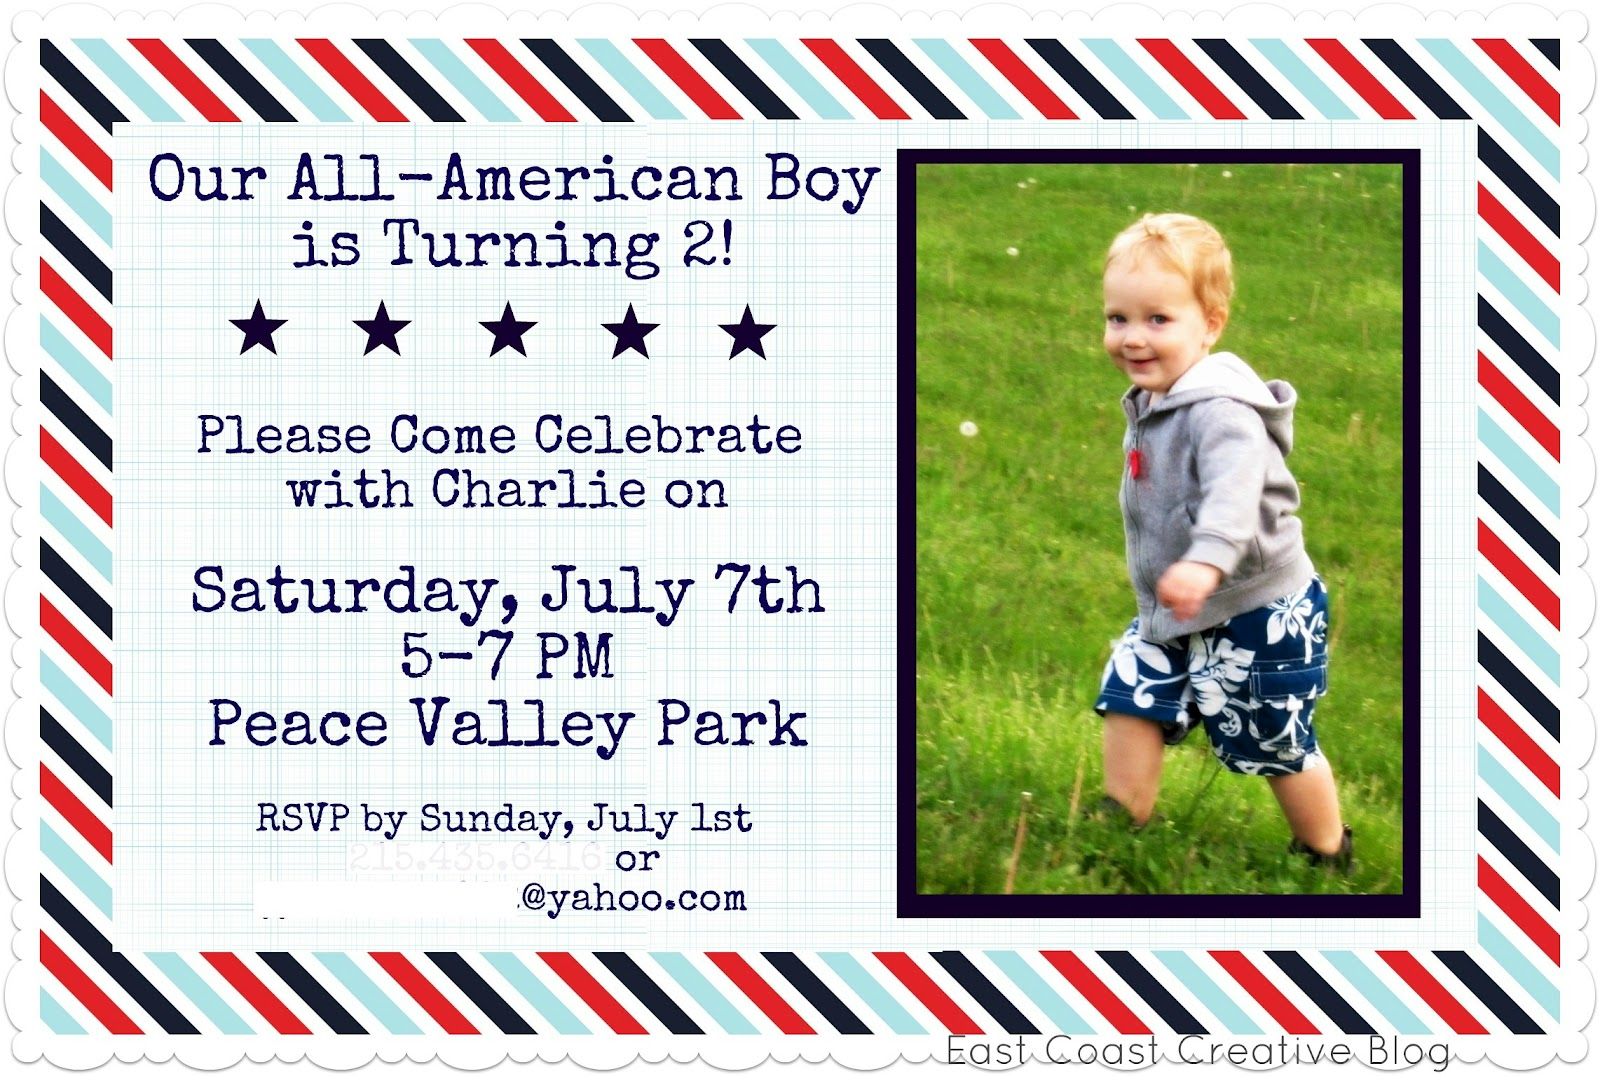 How to scrapbook yahoo - Last Week I Showed You The Birthday Party Invite I Made Using Digital Scrapbook Paper For Charlie S 2nd Birthday You Might Remember That It Looked Like